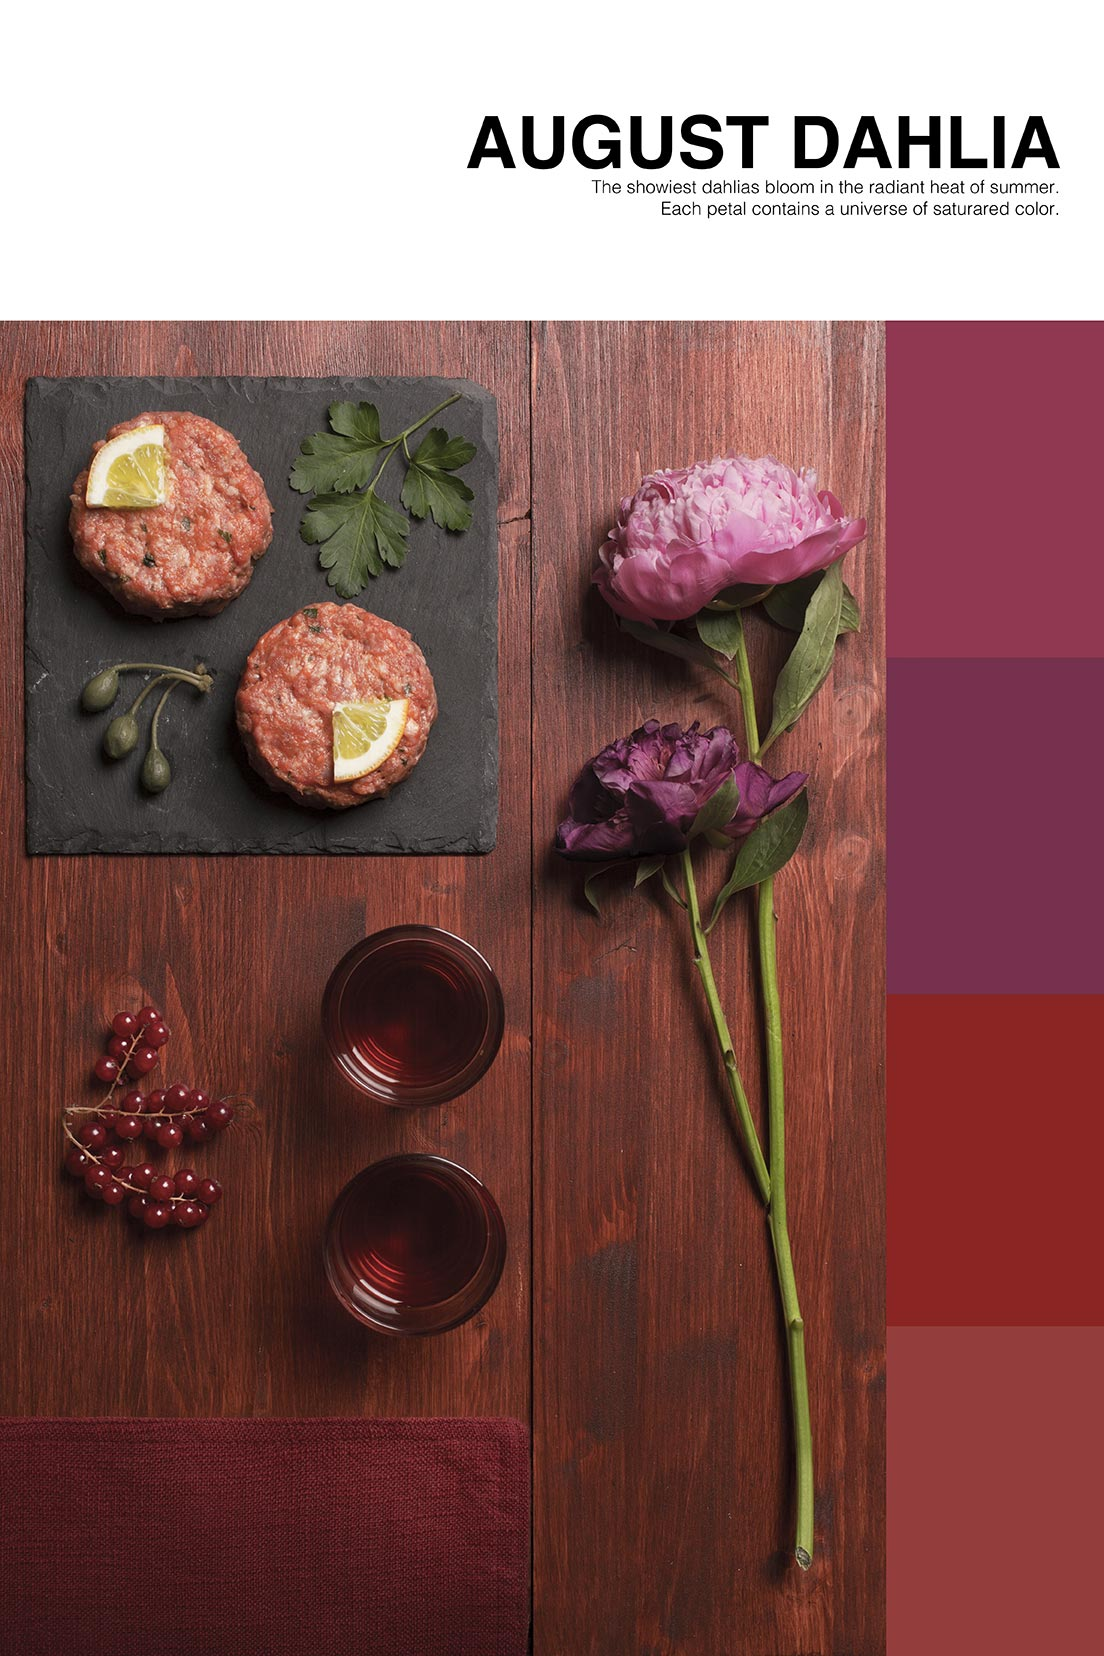 isabella-vacchi-color-coded-food-photography-4